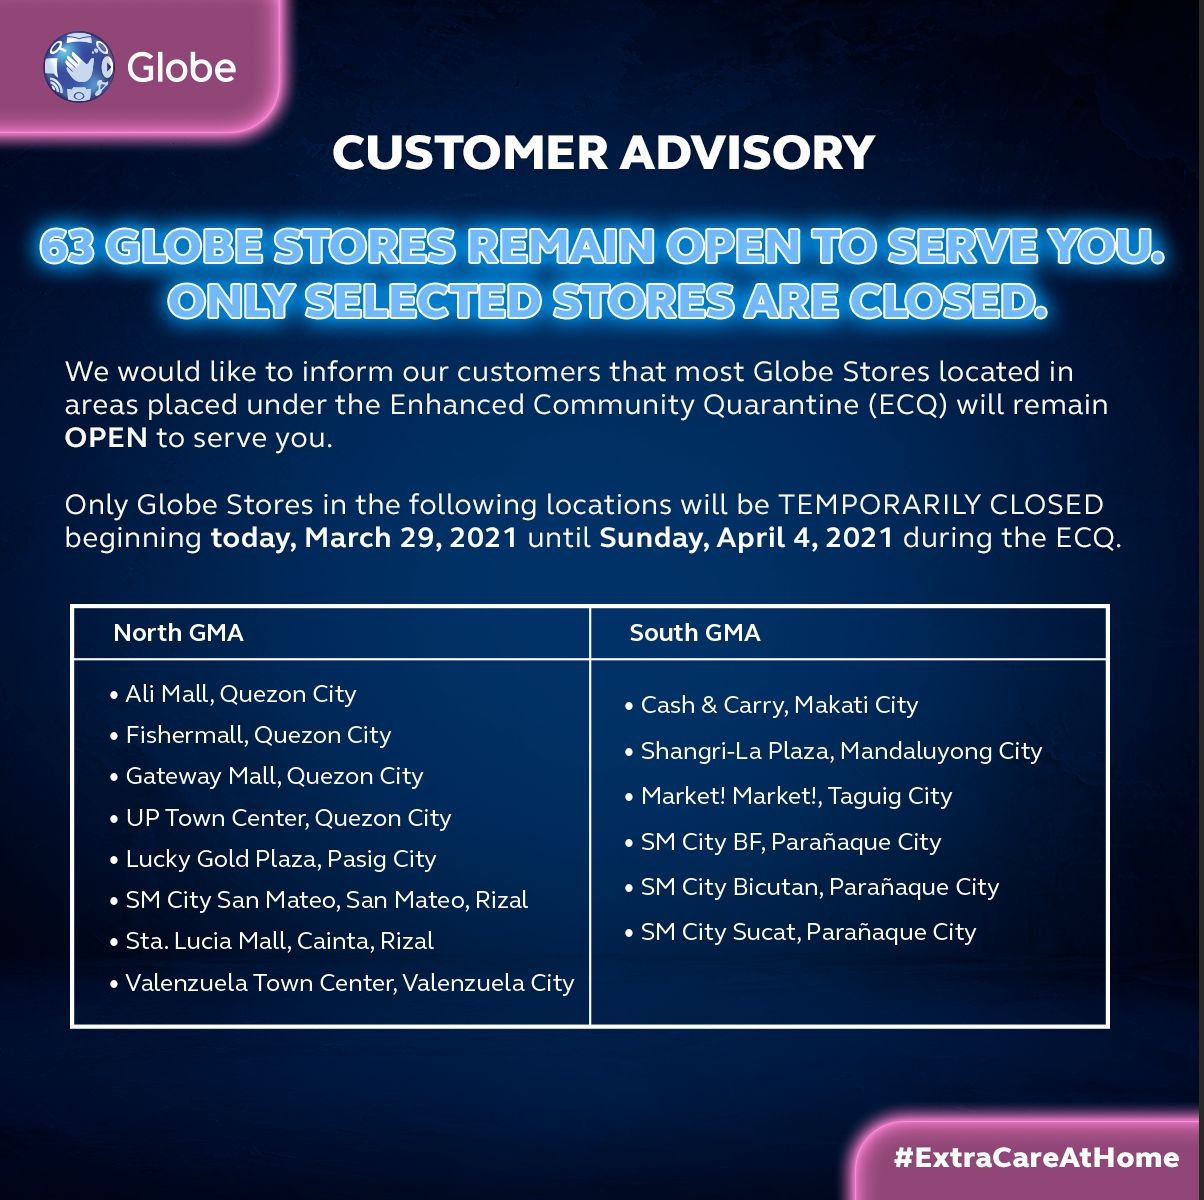 #ExtraCareAtHome: Globe continues service support to customers as NCR and other areas placed under ECQ